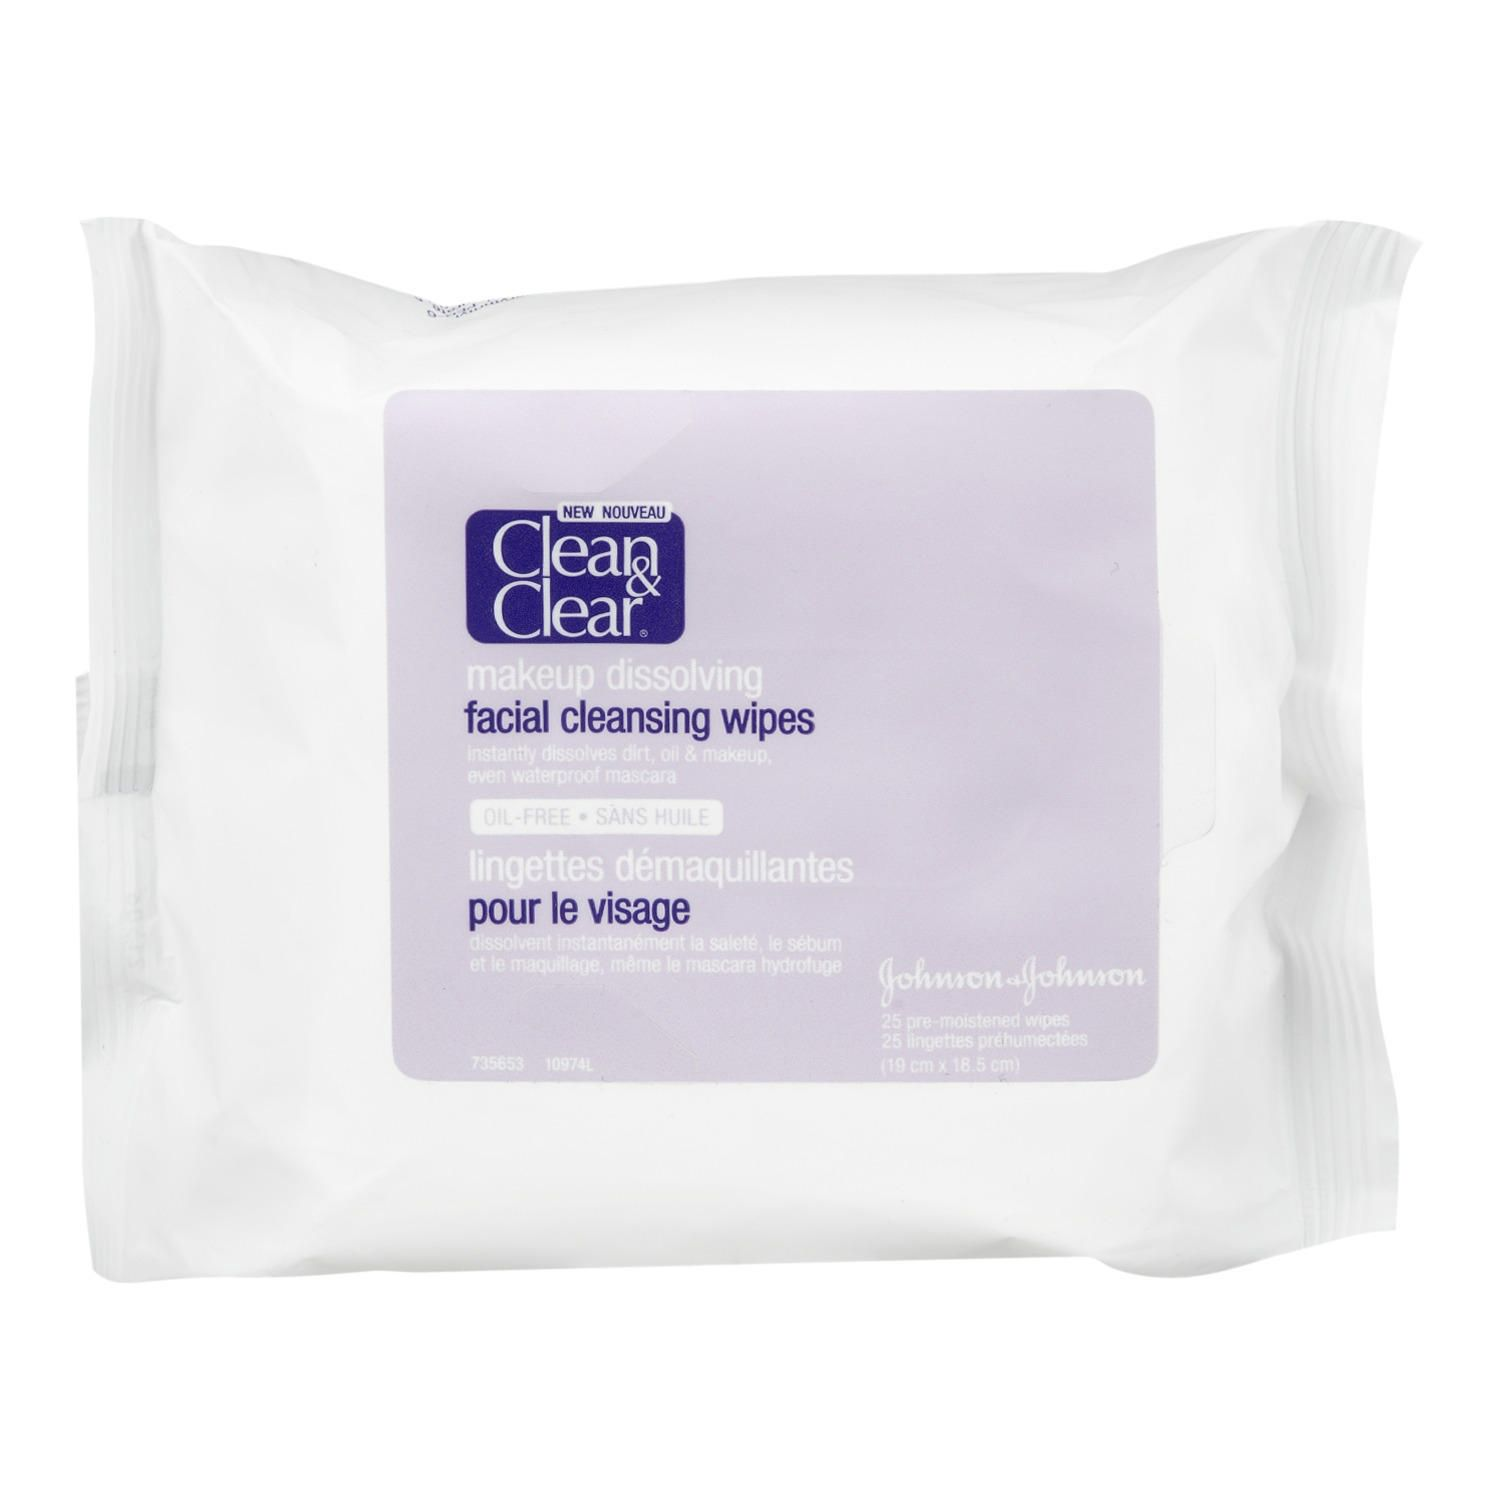 Clean clear makeup dissolving facial cleansing wipes